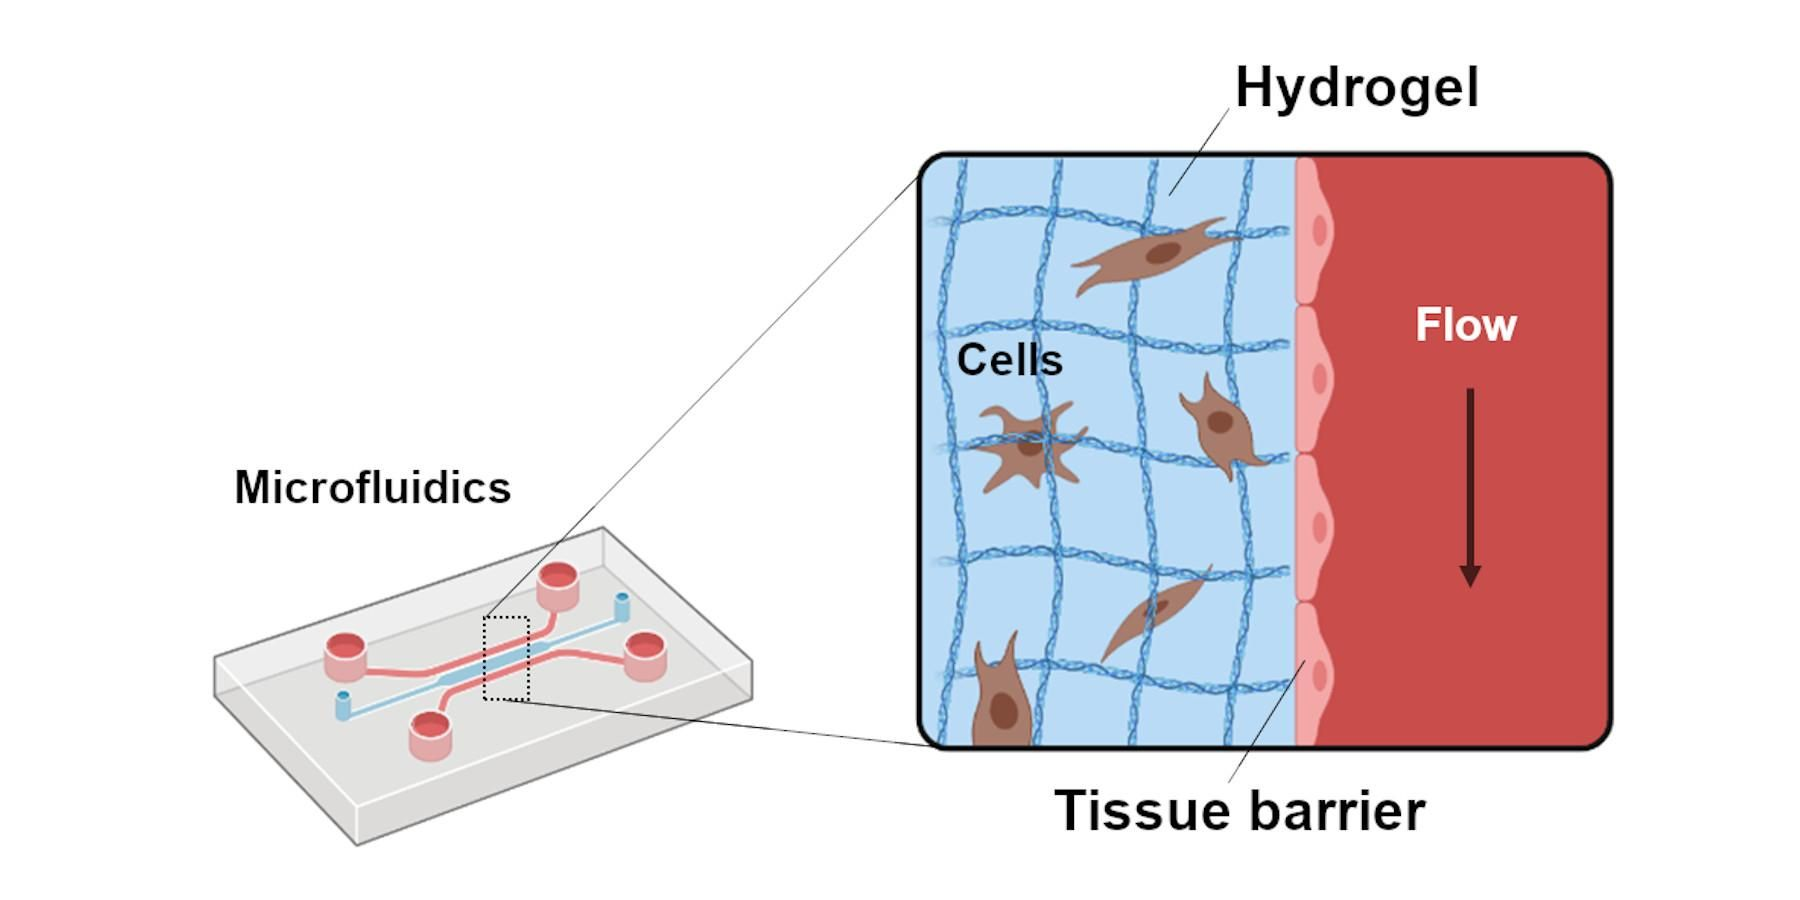 Detail of the microfluidic system, the tissue barrier and the hydrogel